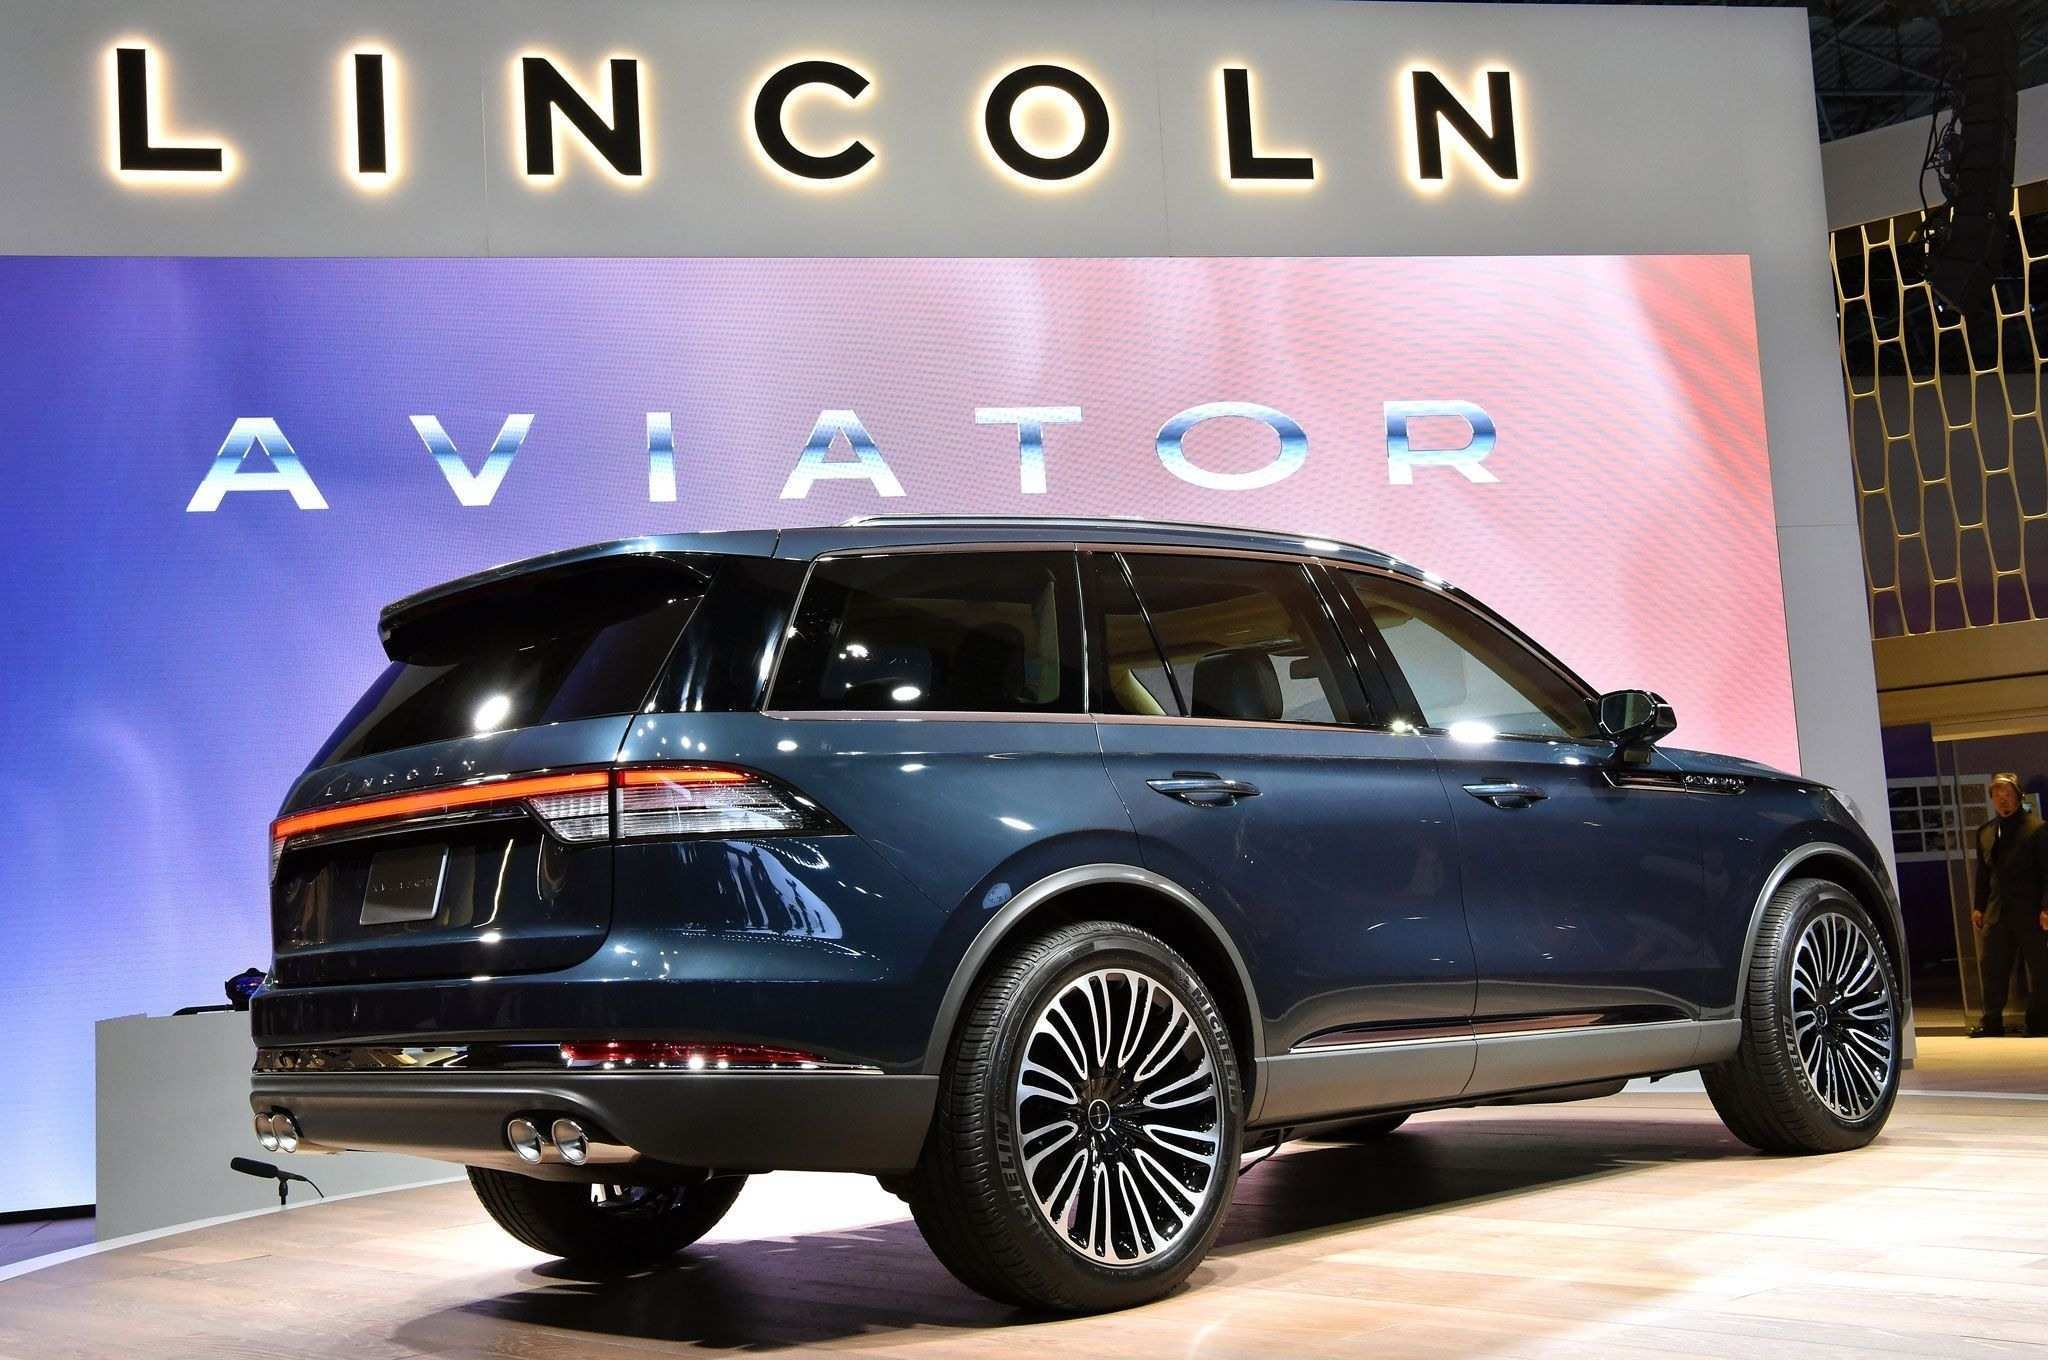 21 New 2020 Lincoln Navigator Images